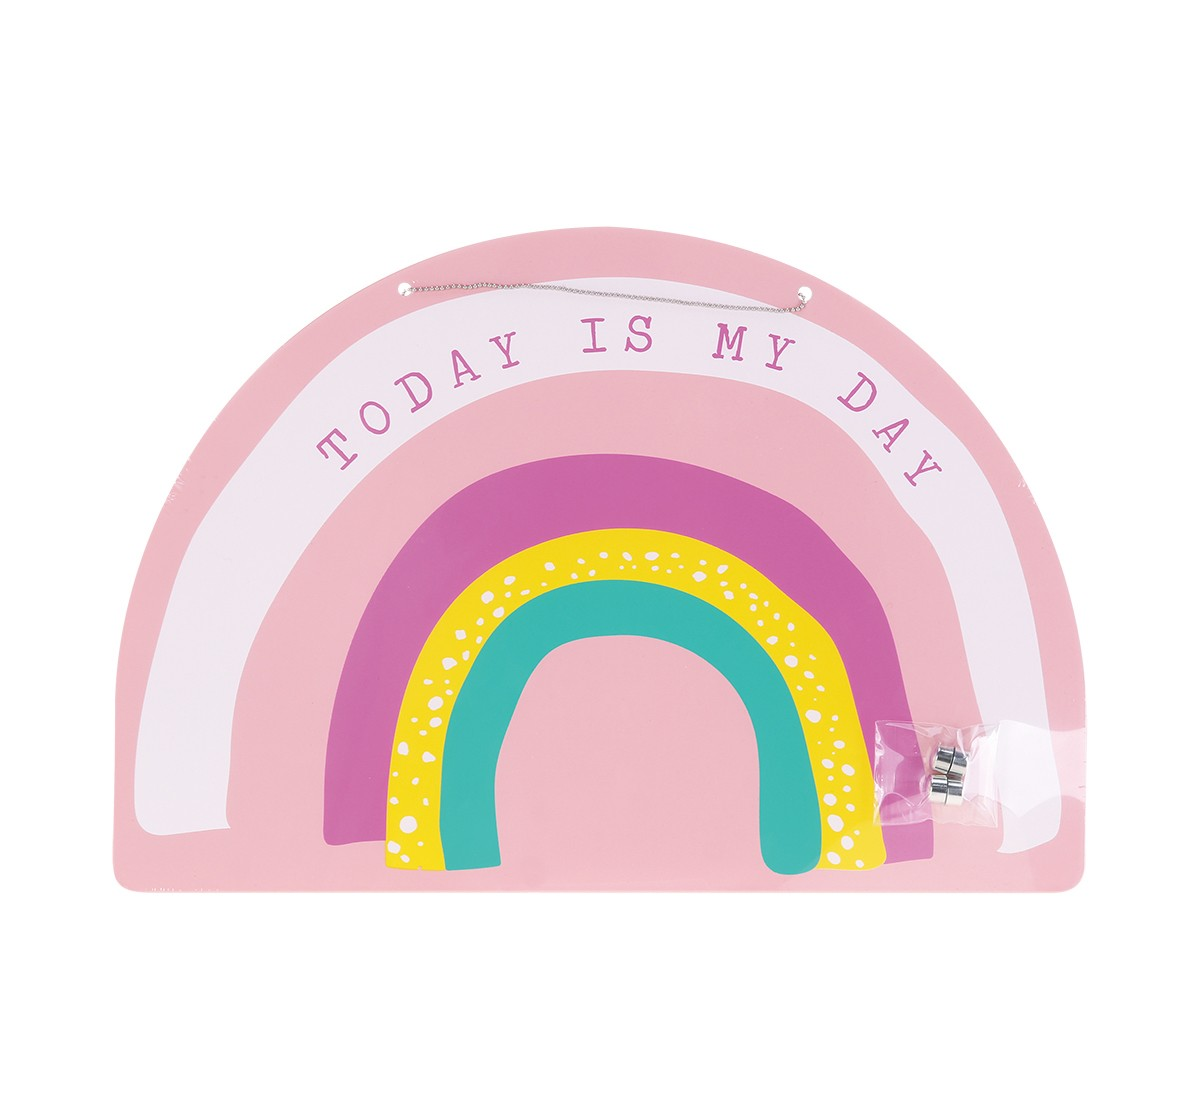 Syloon Rainbow - Metal Message Board With Magnets Activity Table & Boards for Kids age 5Y+